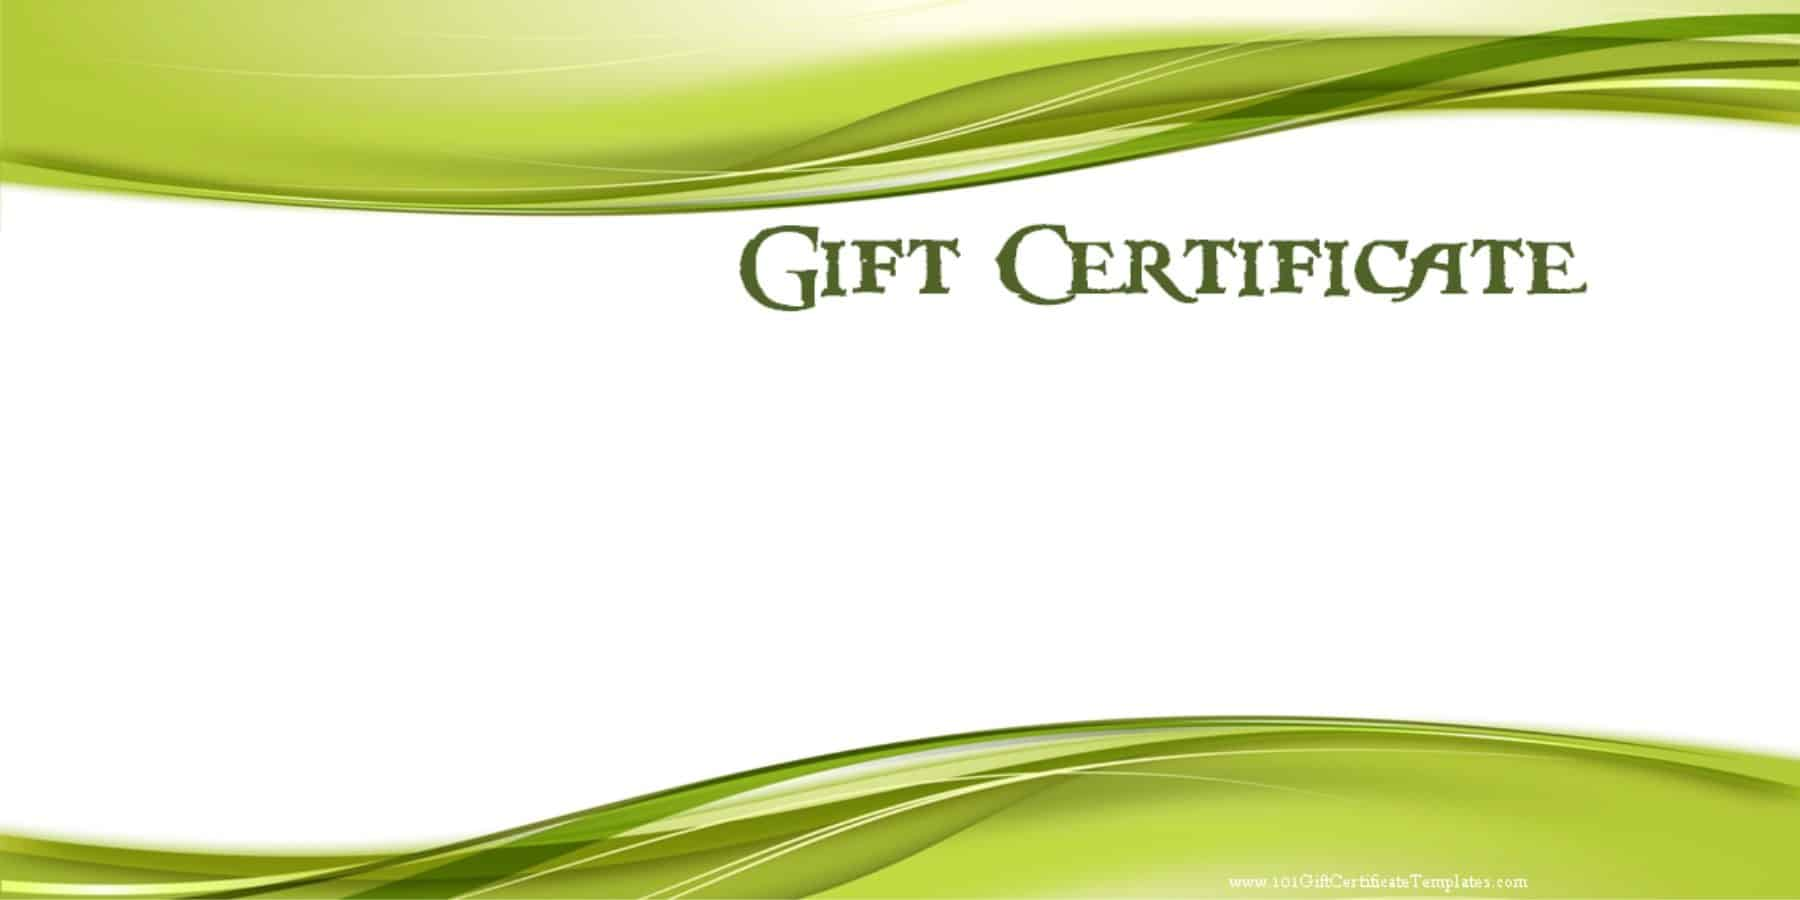 Printable gift certificate templates blank gift certificate which can be customized yelopaper